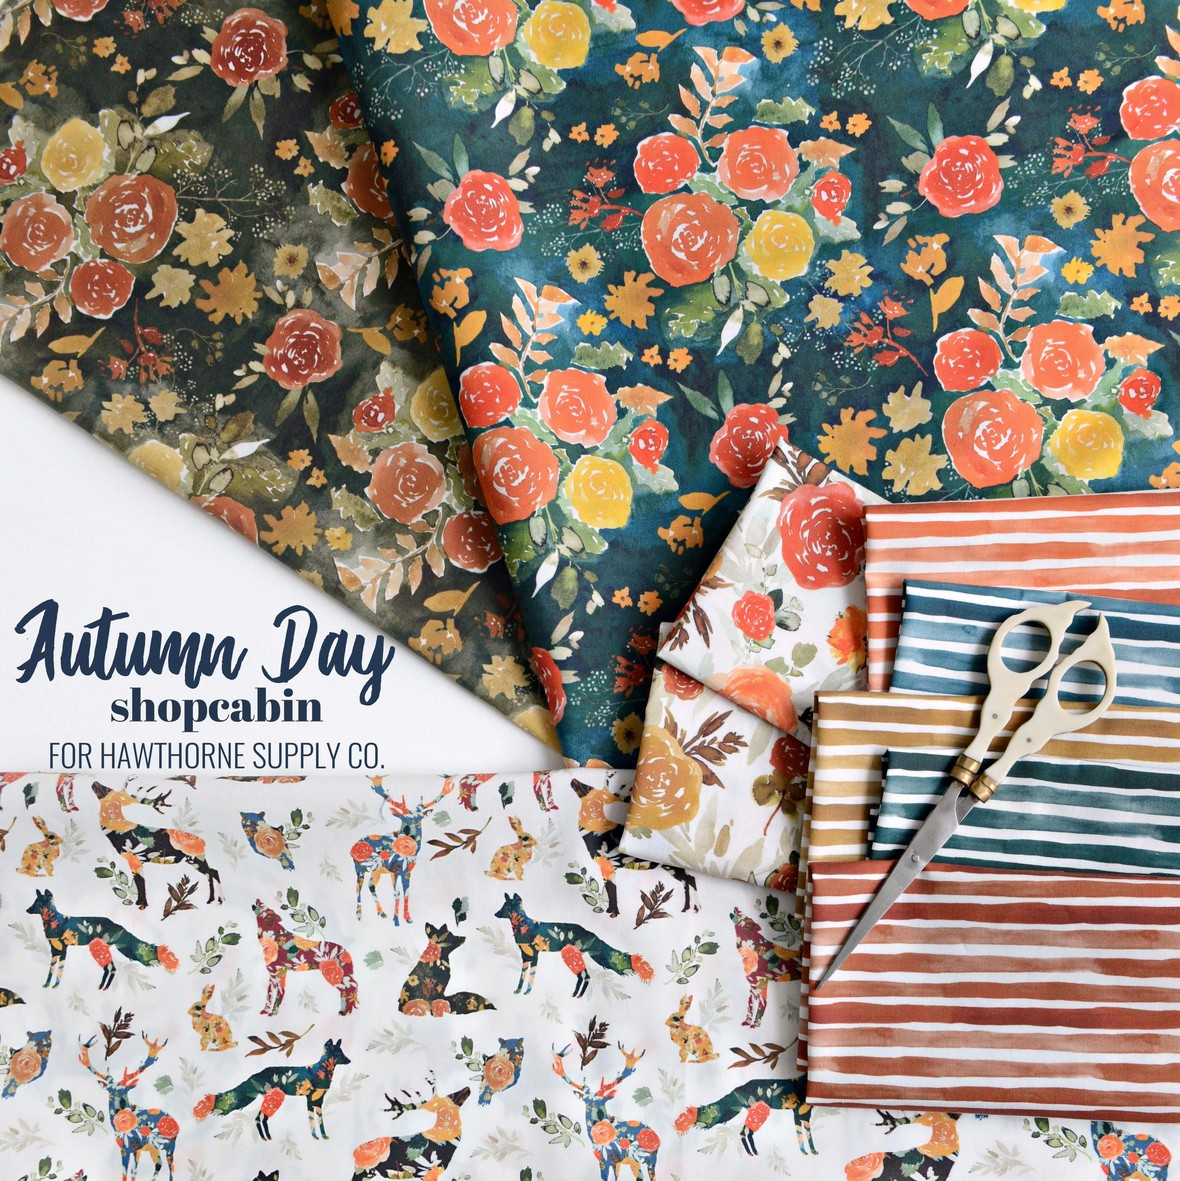 Autumn Day Fabric Poster Shopcabin at Hawthorne Supply Co